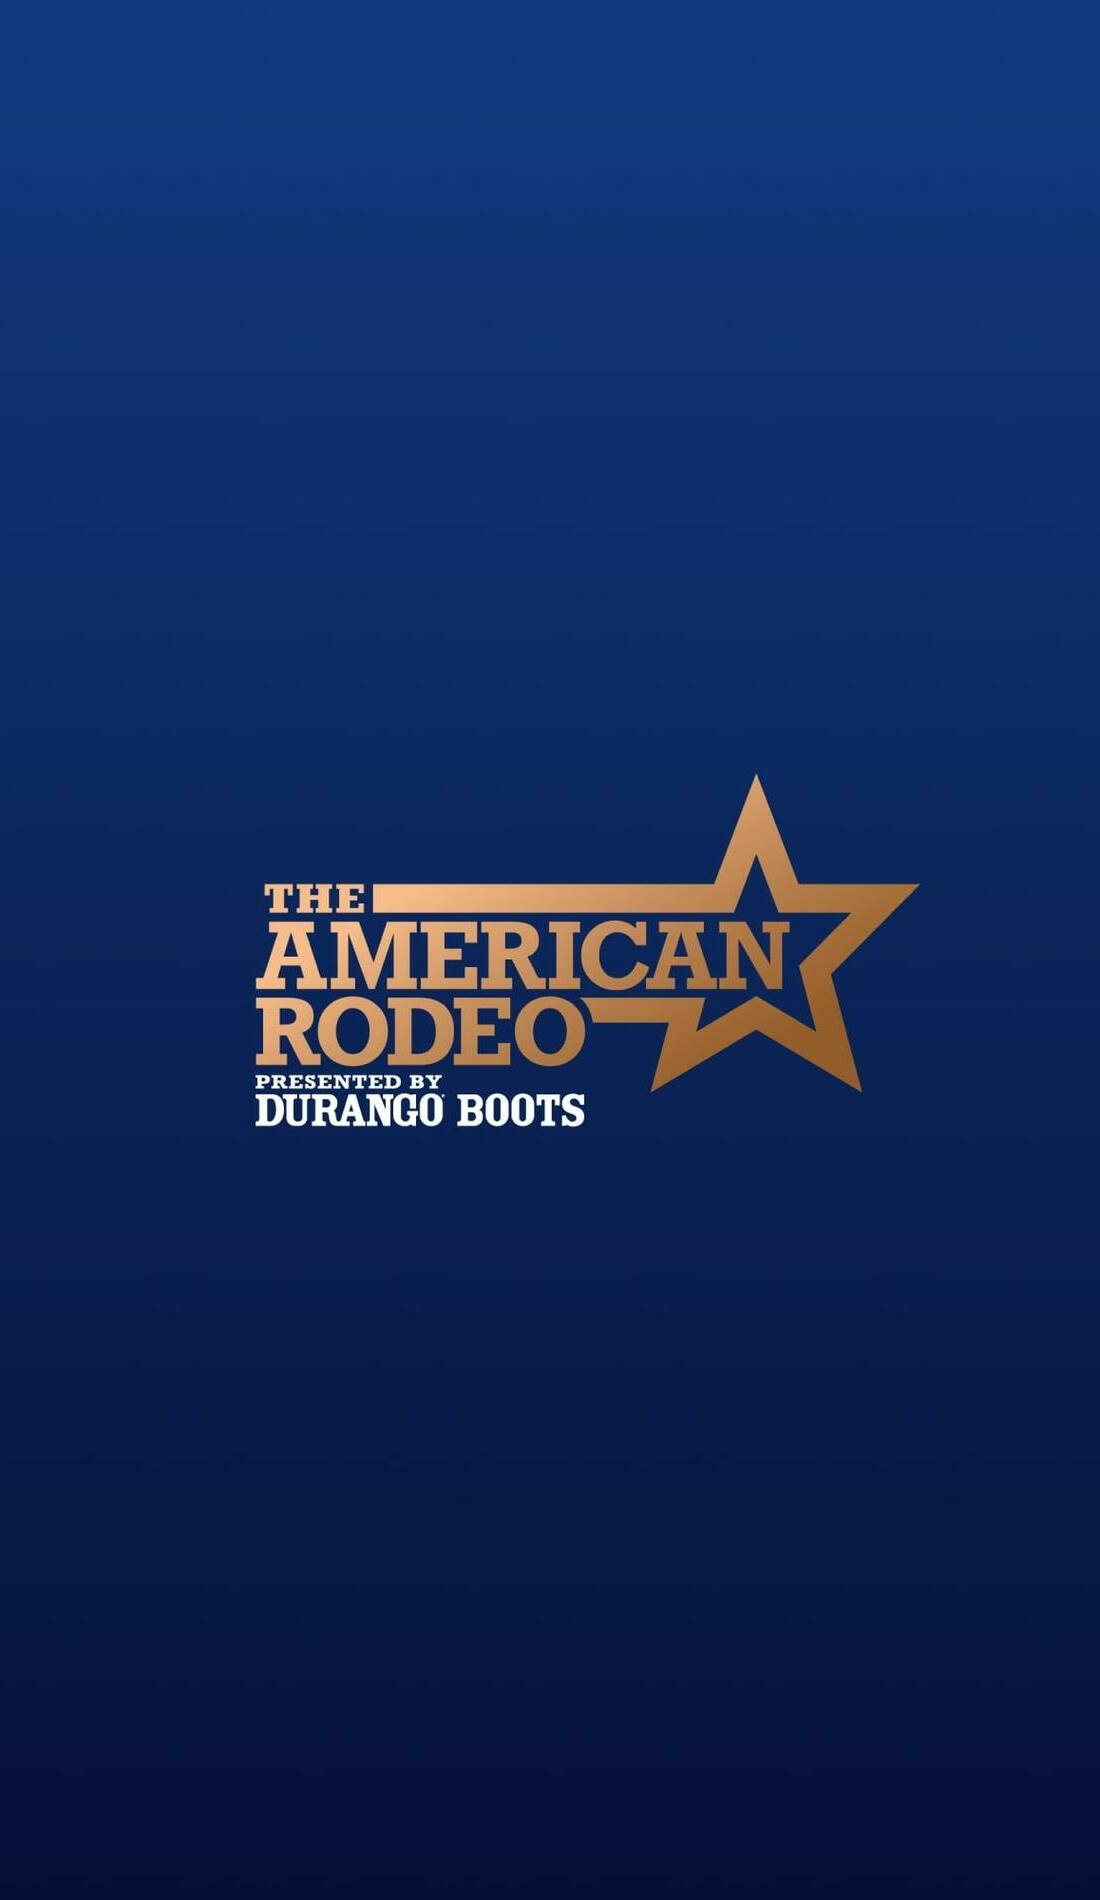 A The American Rodeo live event